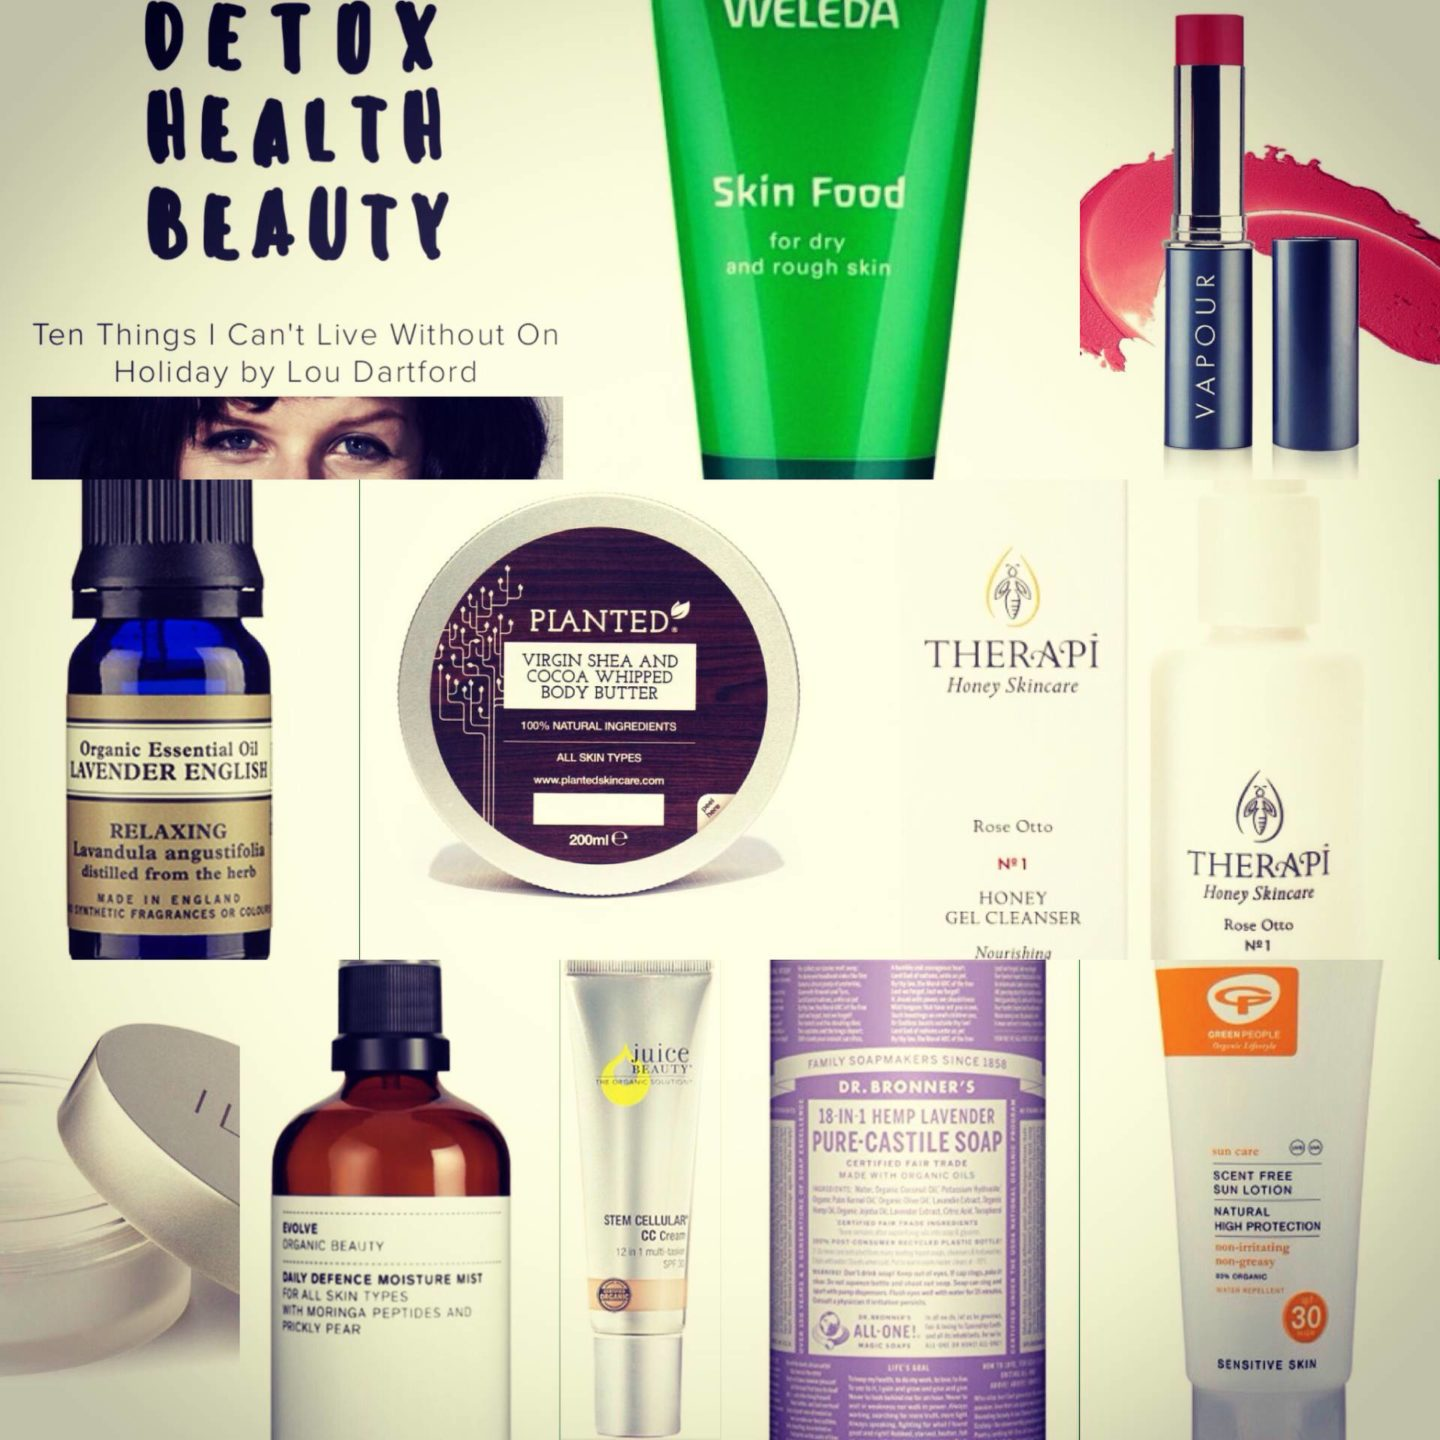 My holiday essentials for Detox Health Beauty..